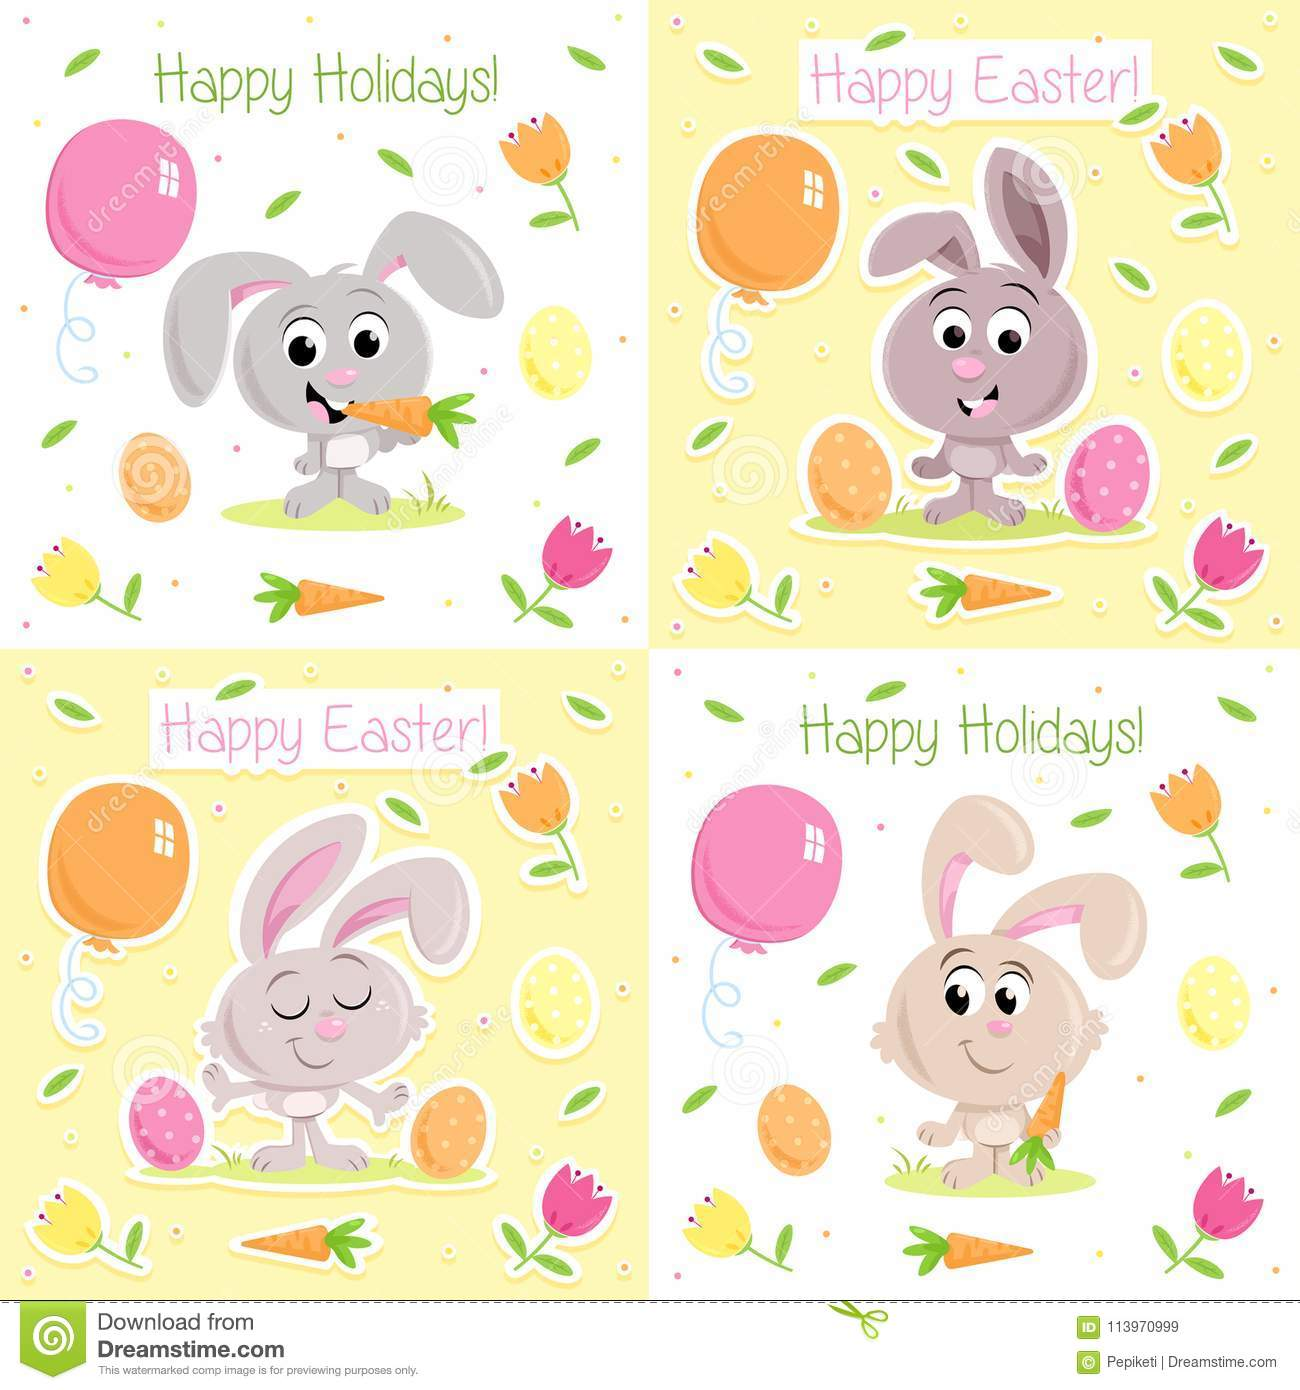 Lovely Little Easter Bunny Easter Greeting Card Set For Greeting